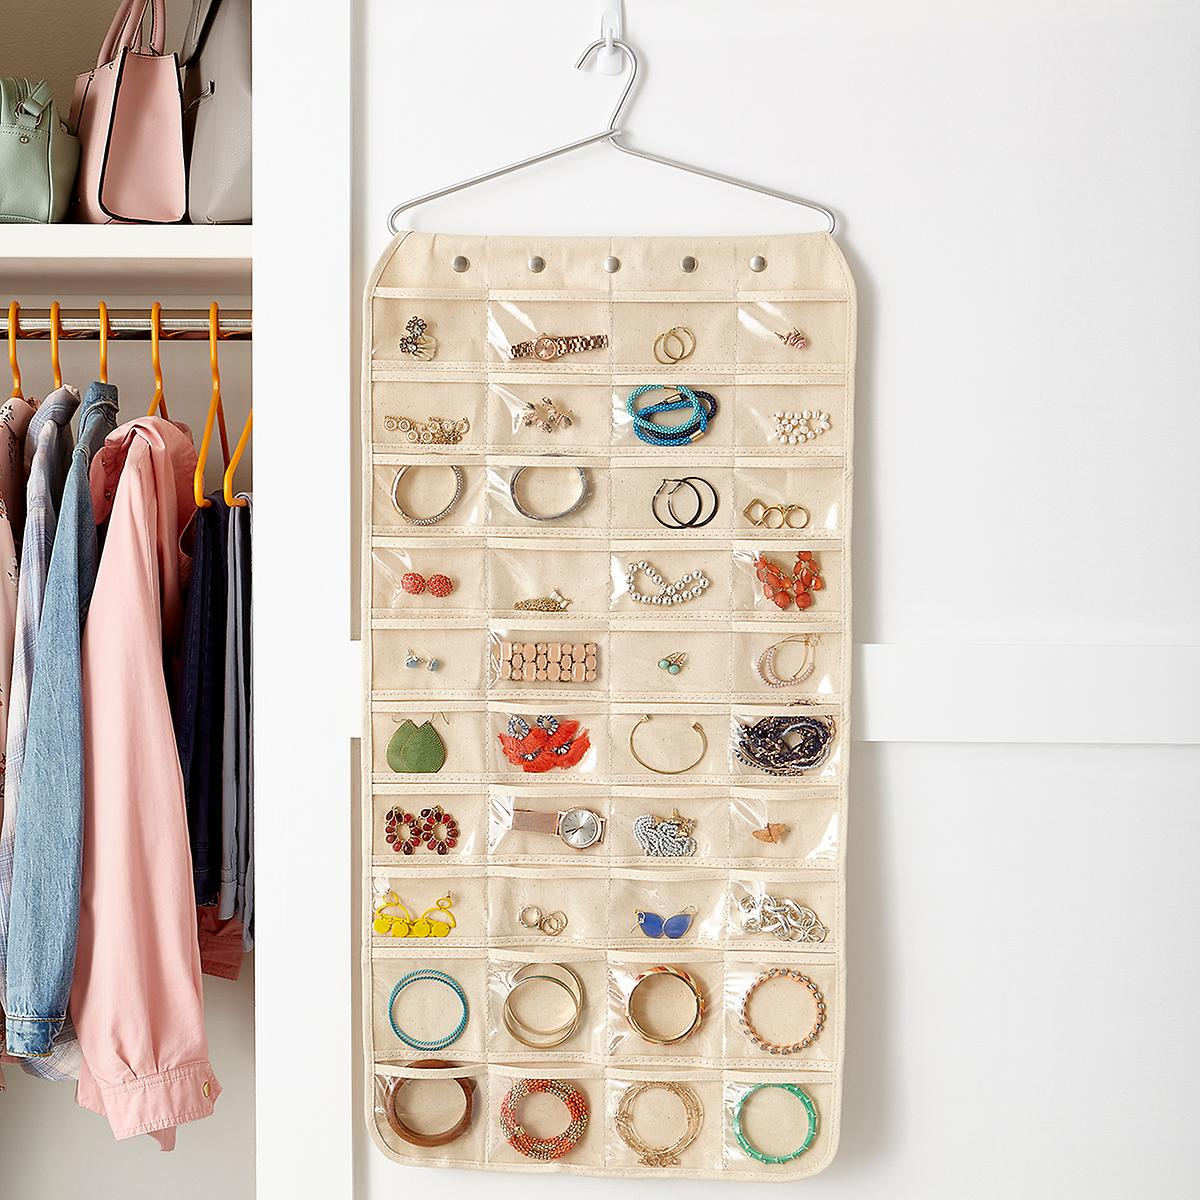 This is the jewelry organizer I have! I love it, because I'm able to see everything easily. I also don't have a ton of space in my closet, and this is an easy, space-saving organizer that fits right in next to your clothes.